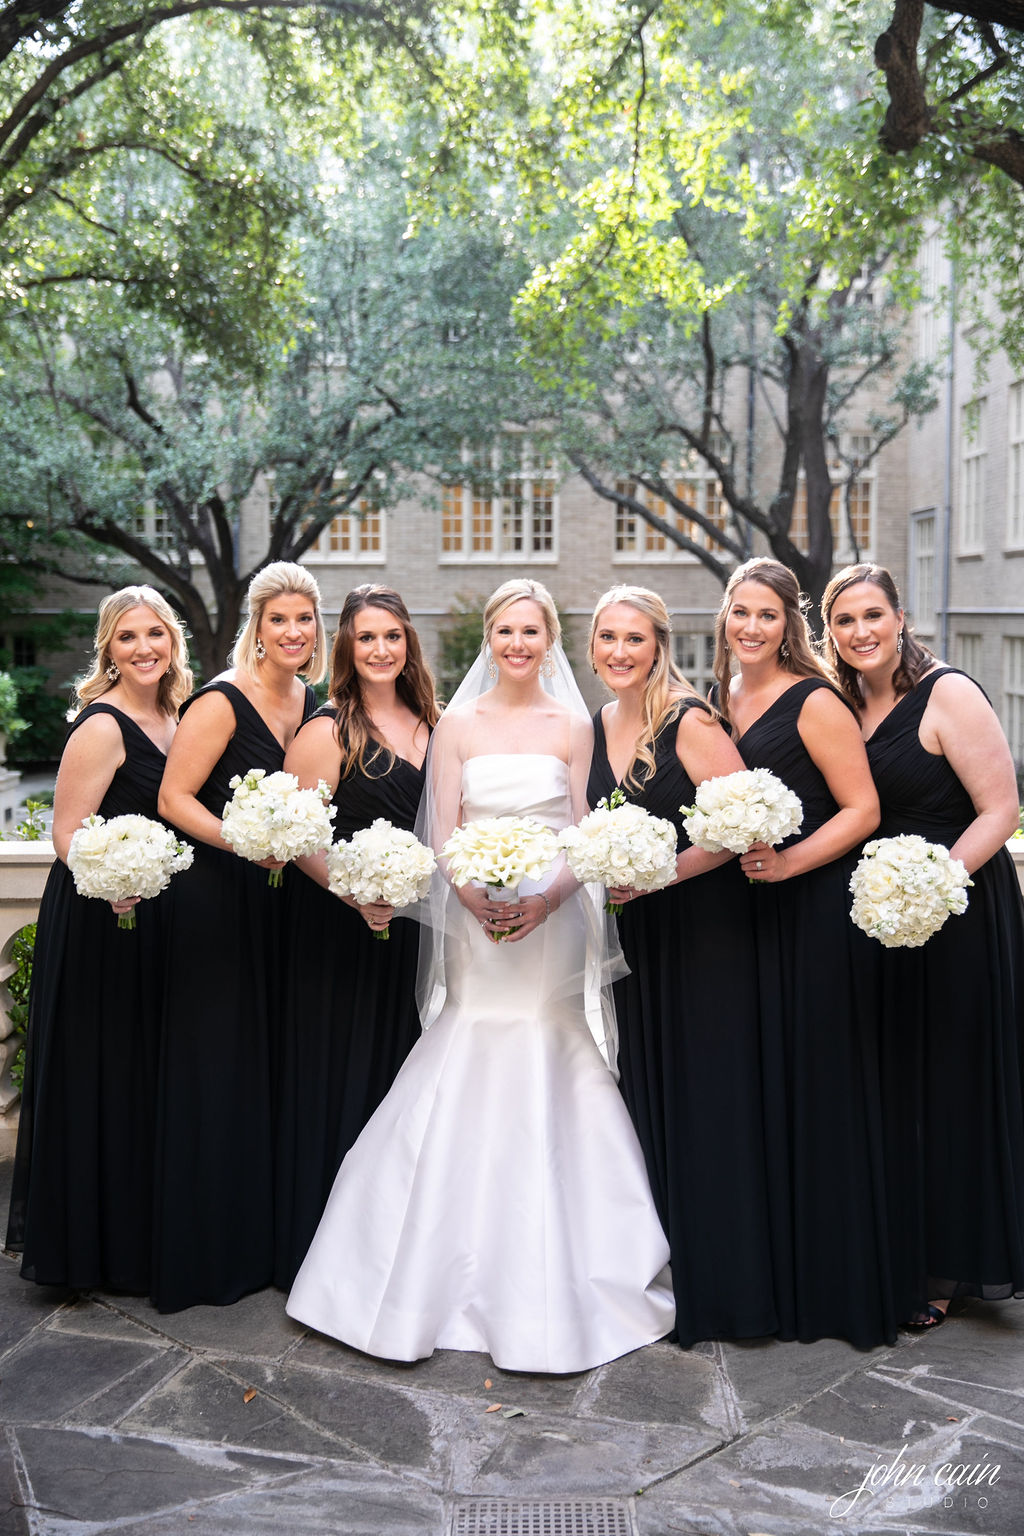 Dallas Country Club Wedding - Timeless Dallas Wedding - Wedding Planner in Dallas - Allday Events - PreCeremony Portraits - 52.JPG